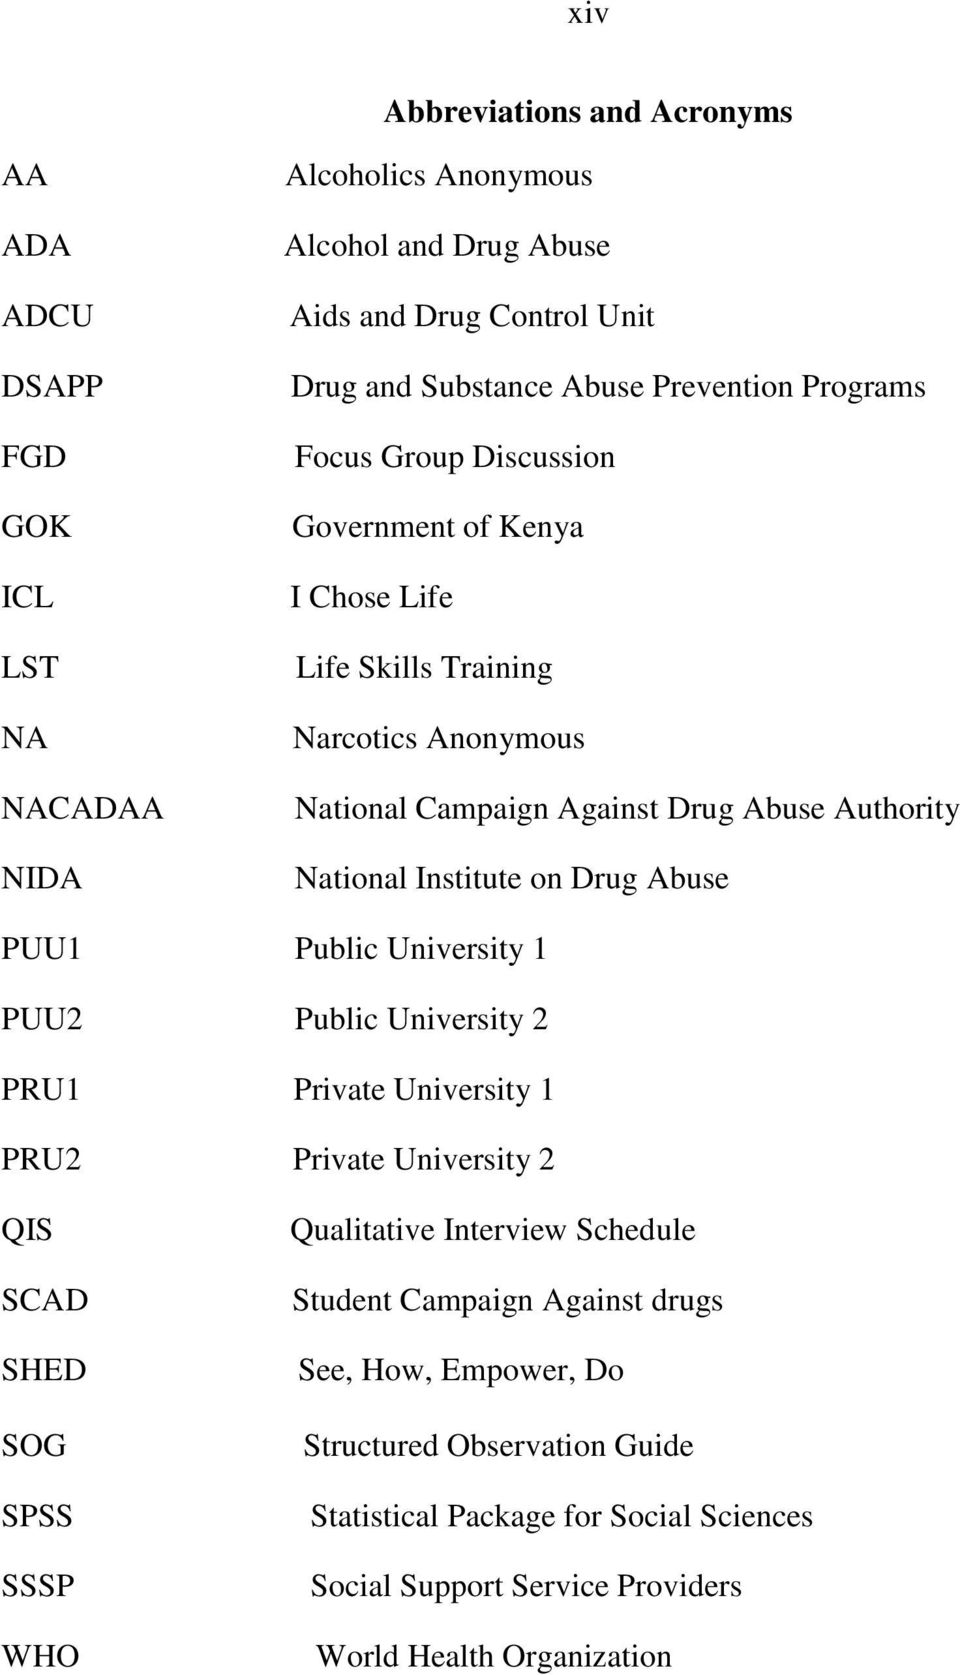 Institute on Drug Abuse PUU1 Public University 1 PUU2 Public University 2 PRU1 Private University 1 PRU2 Private University 2 QIS SCAD SHED SOG SPSS SSSP WHO Qualitative Interview